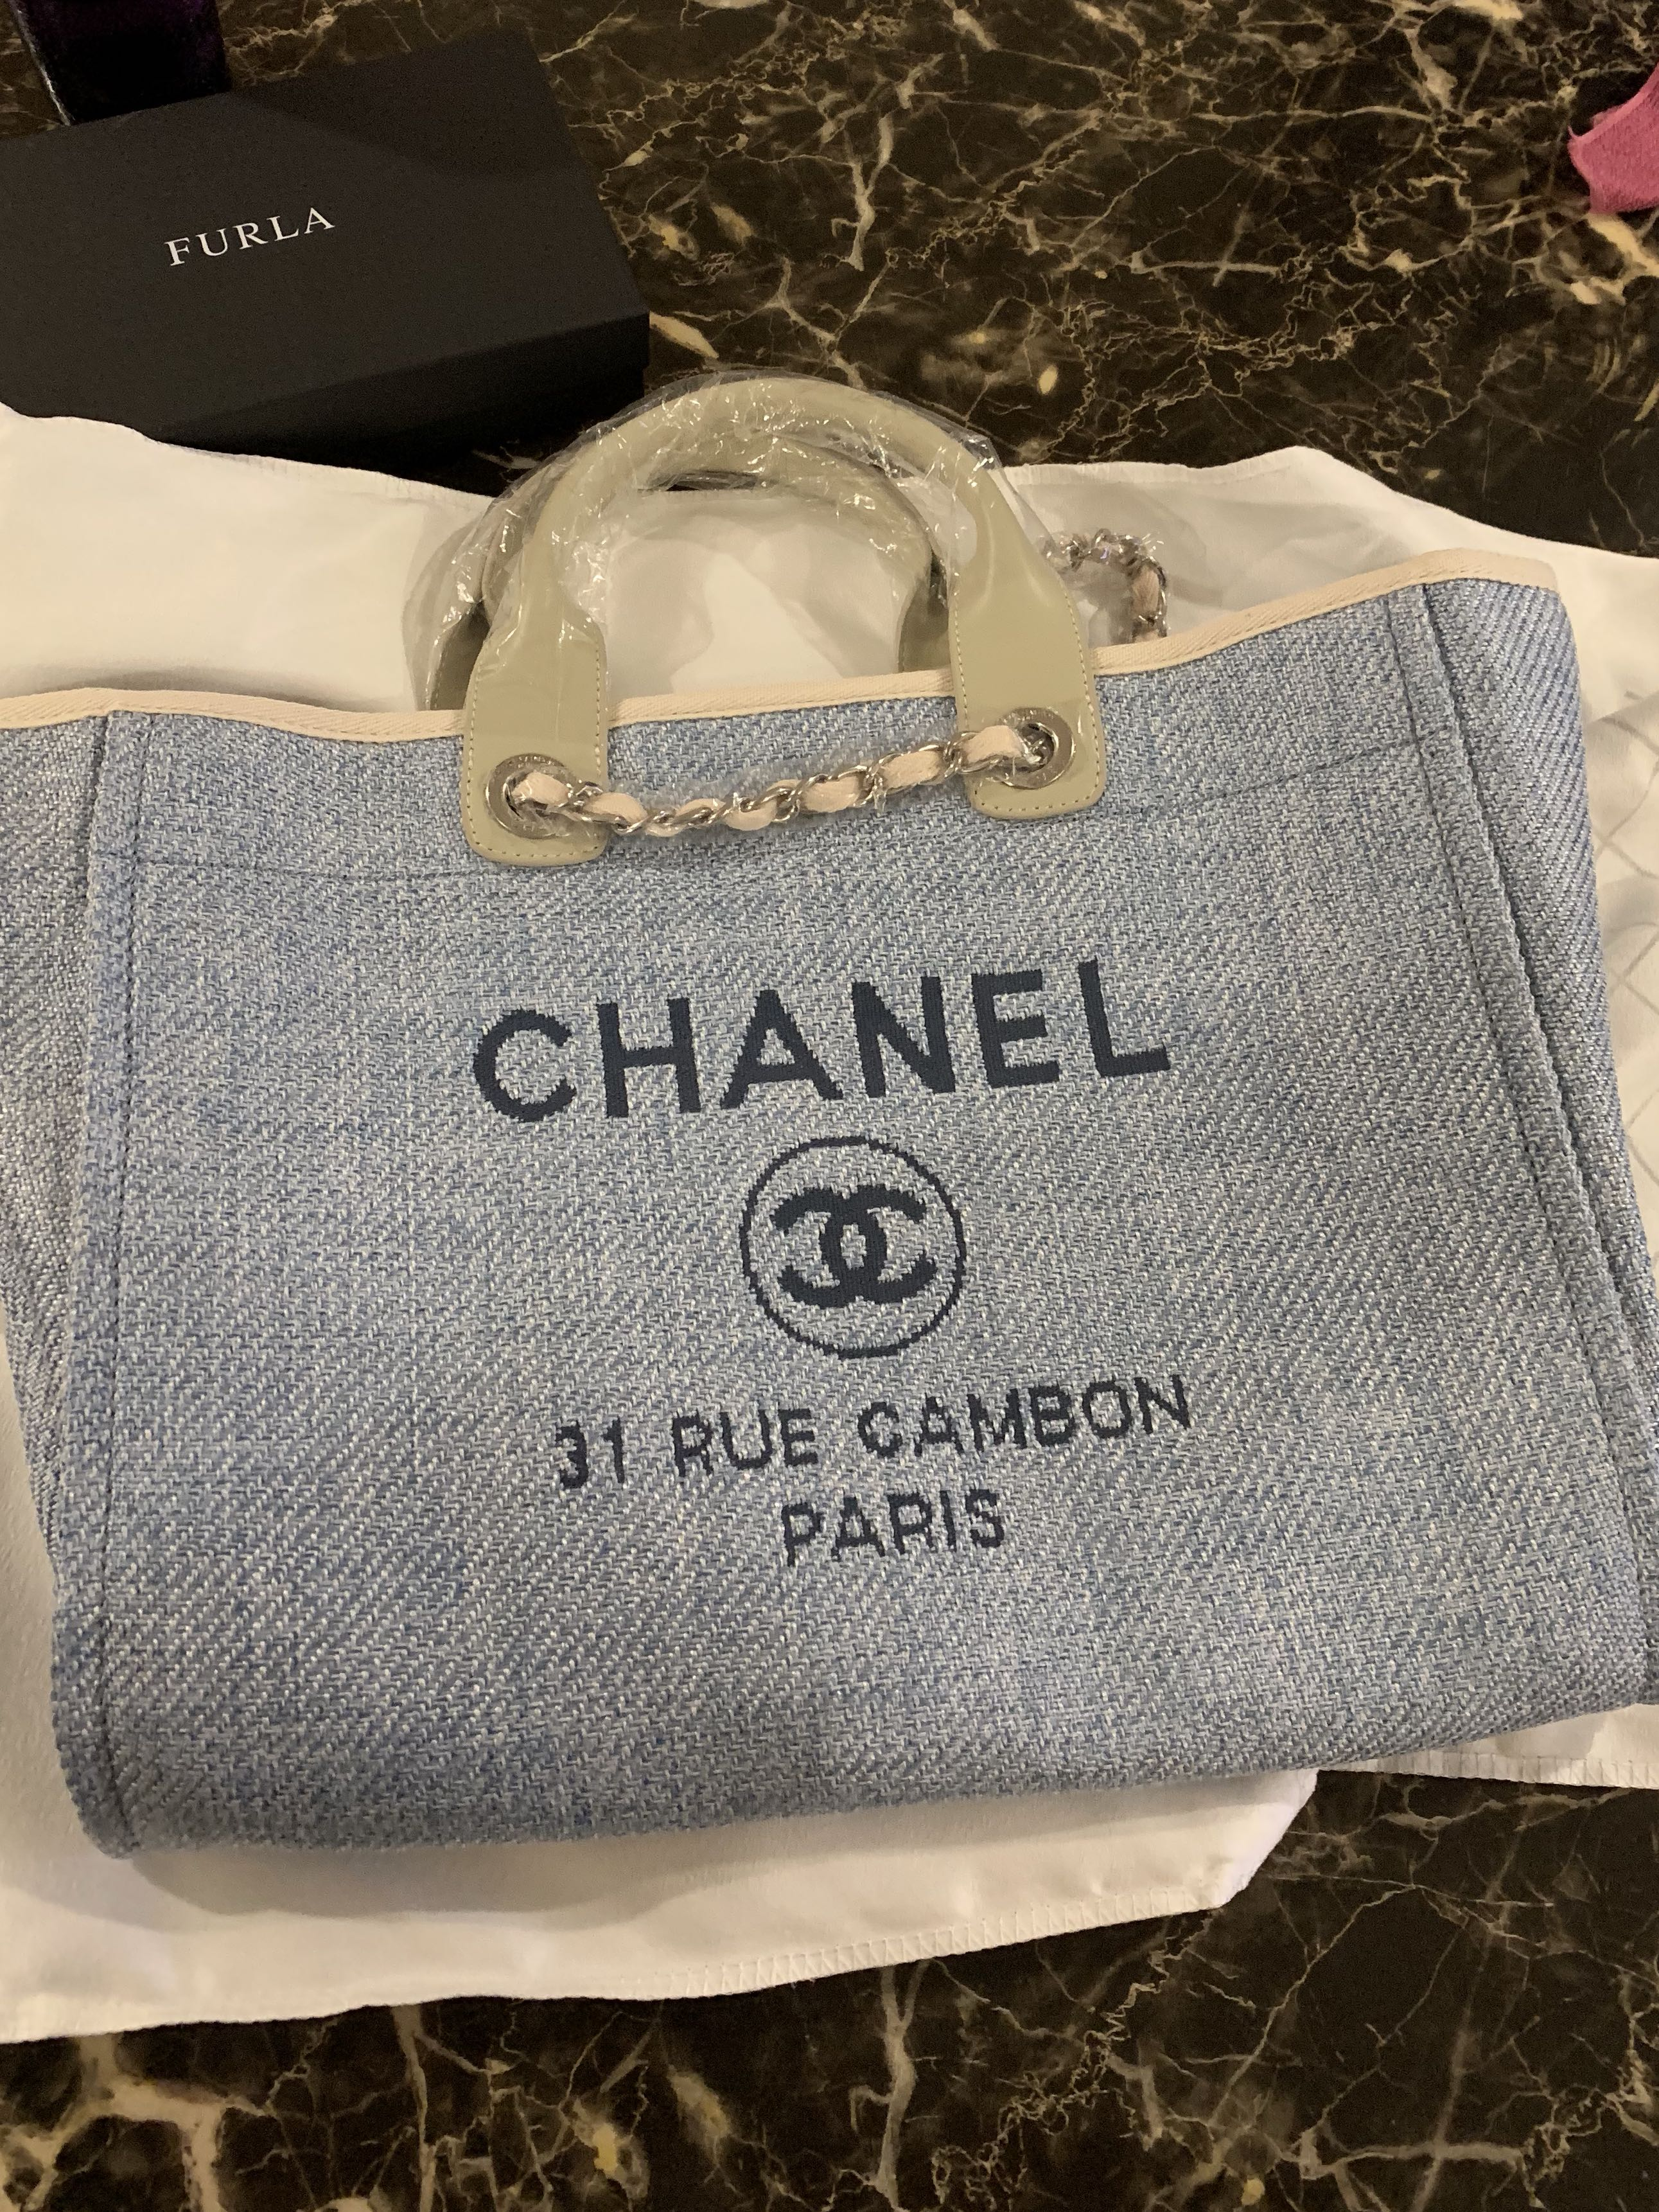 ee21dbf017e9 Brand new Chanel tote bag best quality, Women's Fashion, Bags & Wallets,  Handbags on Carousell